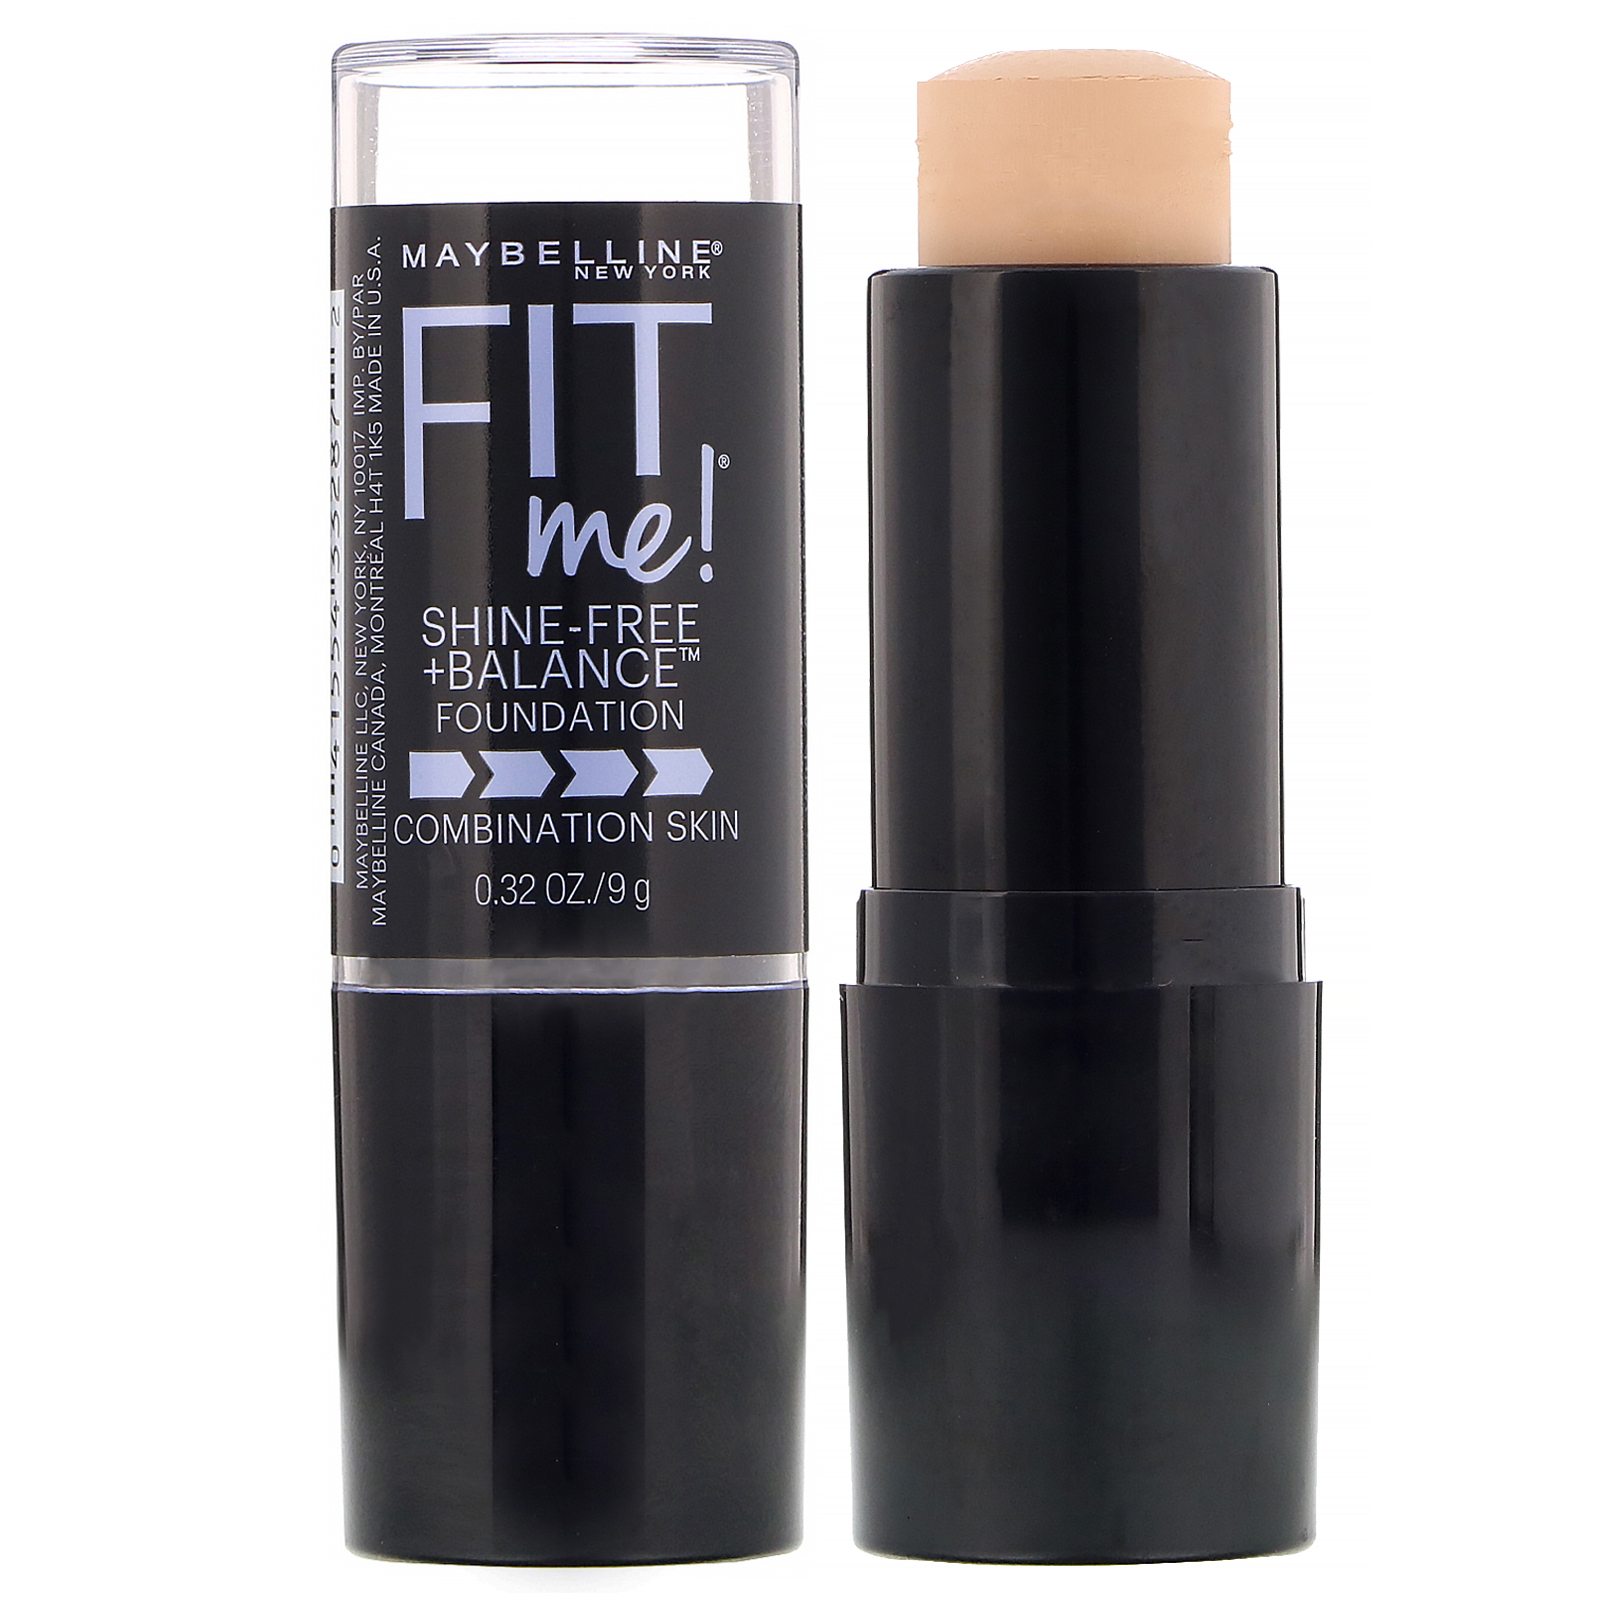 Maybelline Fit Me Shine Free Balance Stick Foundation 115 Ivory 0 32 Oz 9 G Iherb